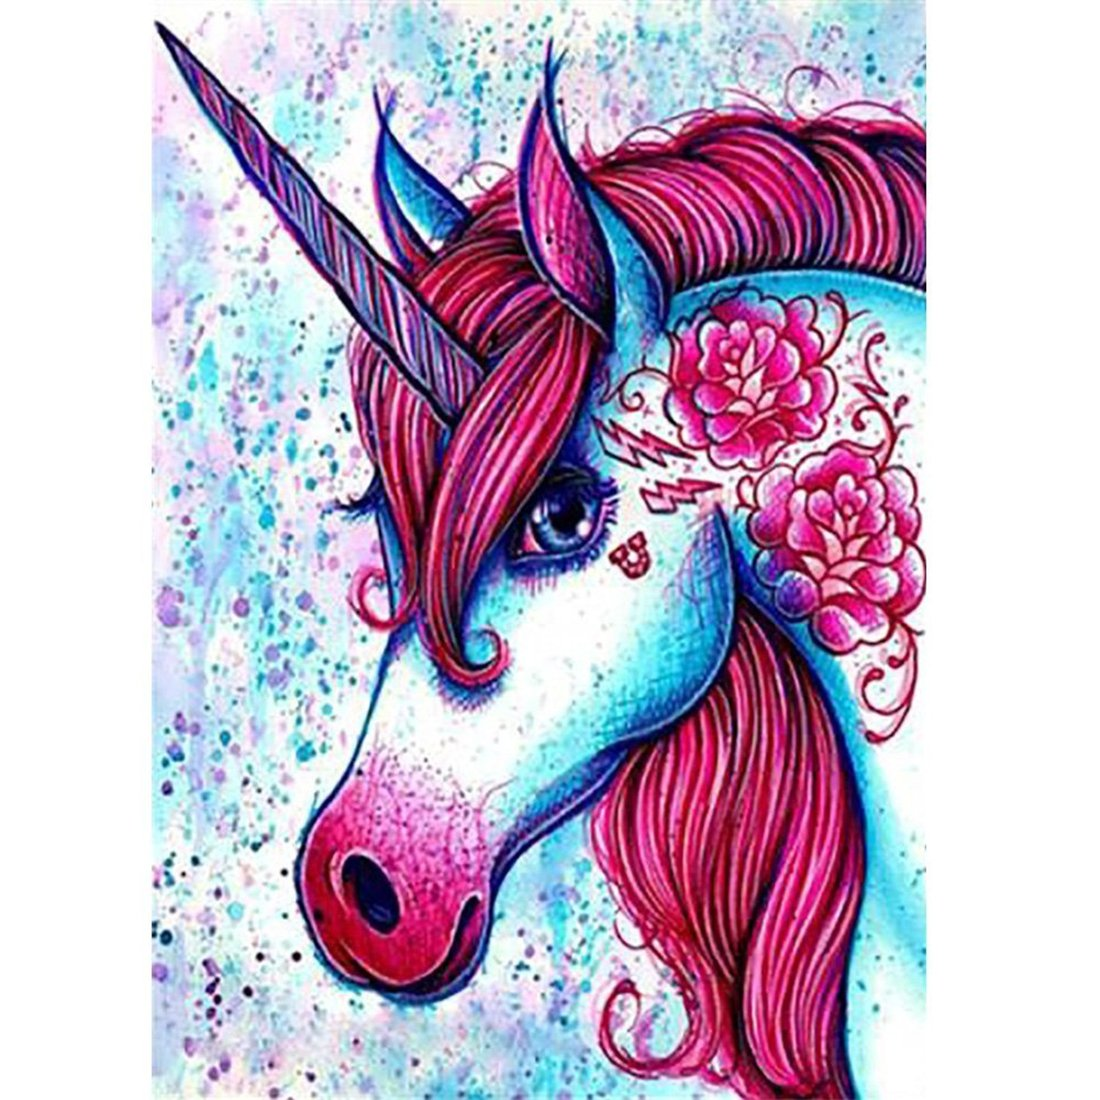 DIY 5D Diamond Painting by number Kits,Pittura diamante 5d fai da te Colored Unicorn//unicorno Full drill strass ricamo a punto croce PICTURES Arts Craft for home Wall Decor 30/ x 40/ cm